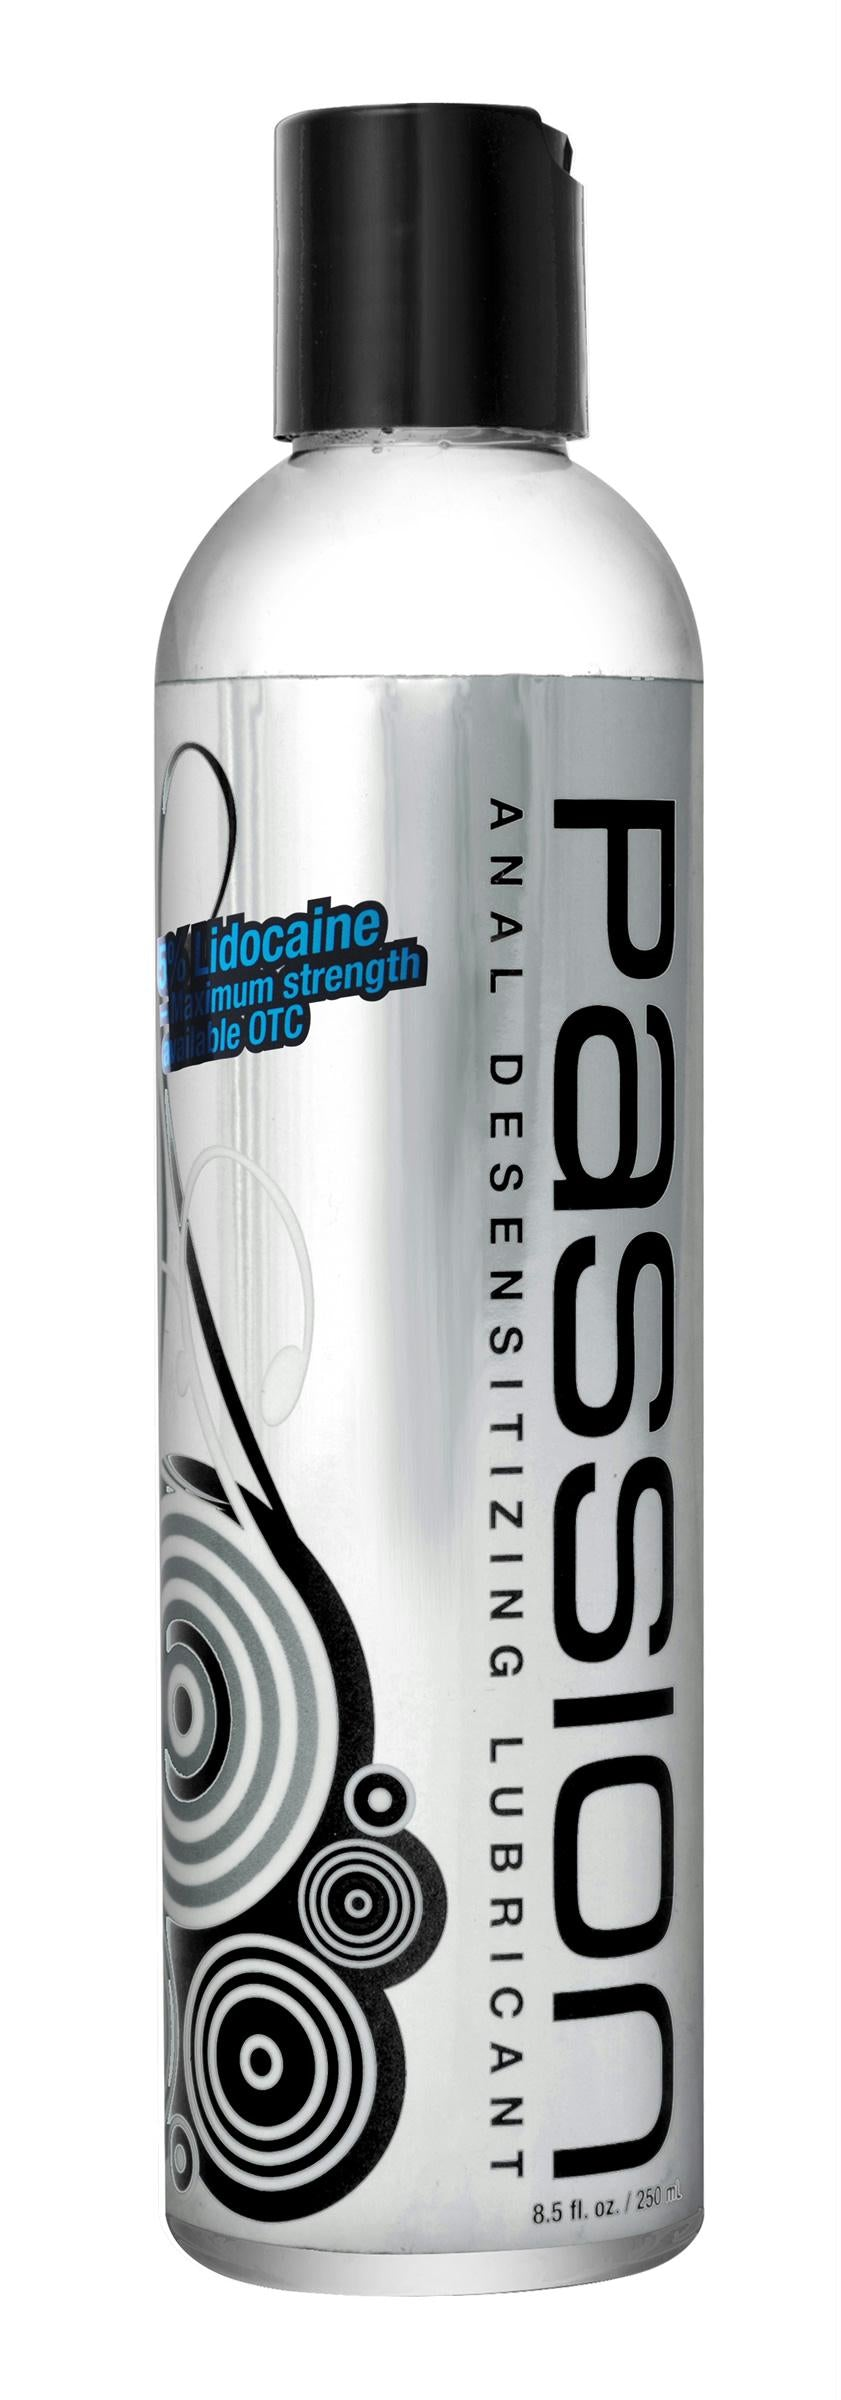 Extra Strength Anal Desensitizing Lube - 8.25 oz. - Fun and Kinky Sex Toys